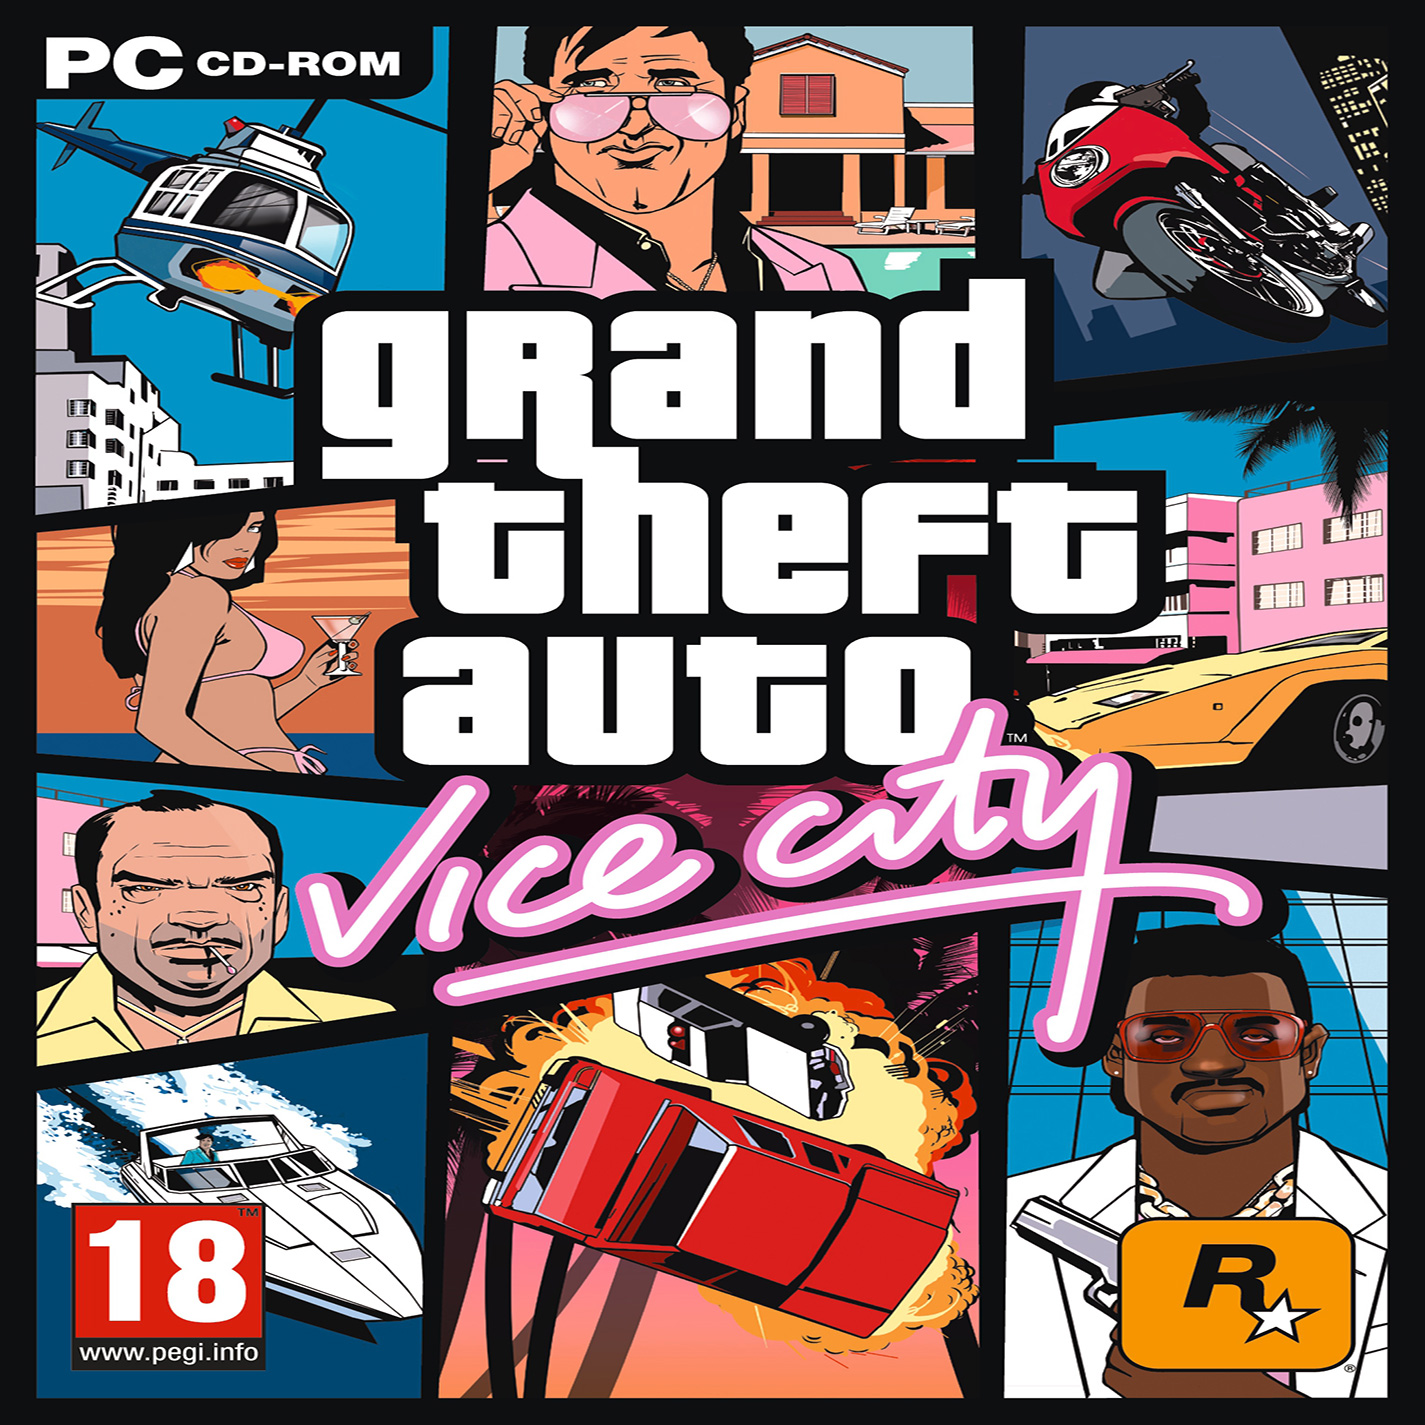 Hot gta henti pron streaming